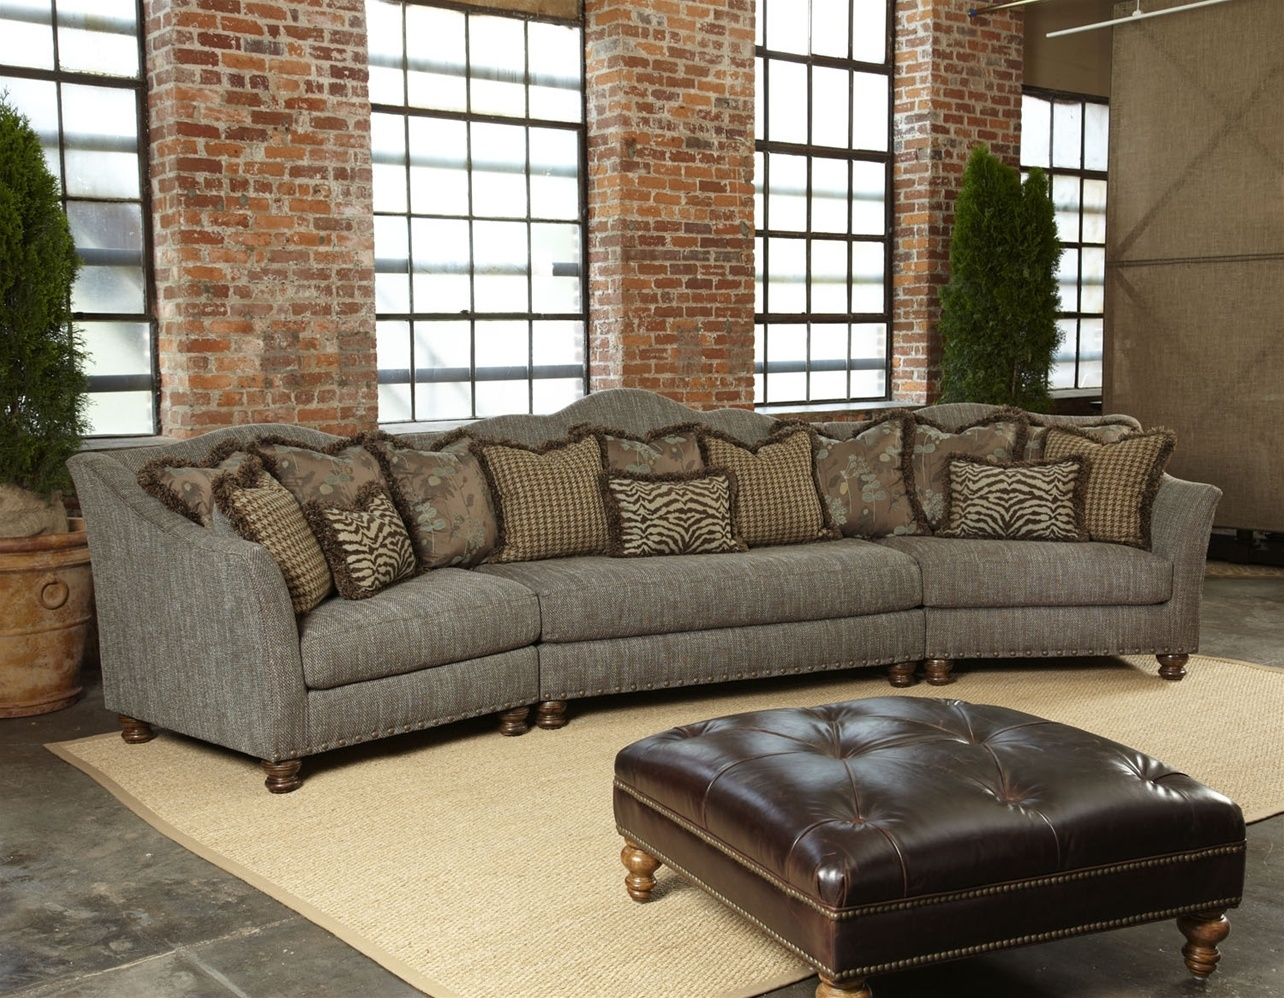 Luxury High Quality Sectional Sofa 20 With Additional Sofa Table Pertaining To Quality Sectional Sofas (View 3 of 10)